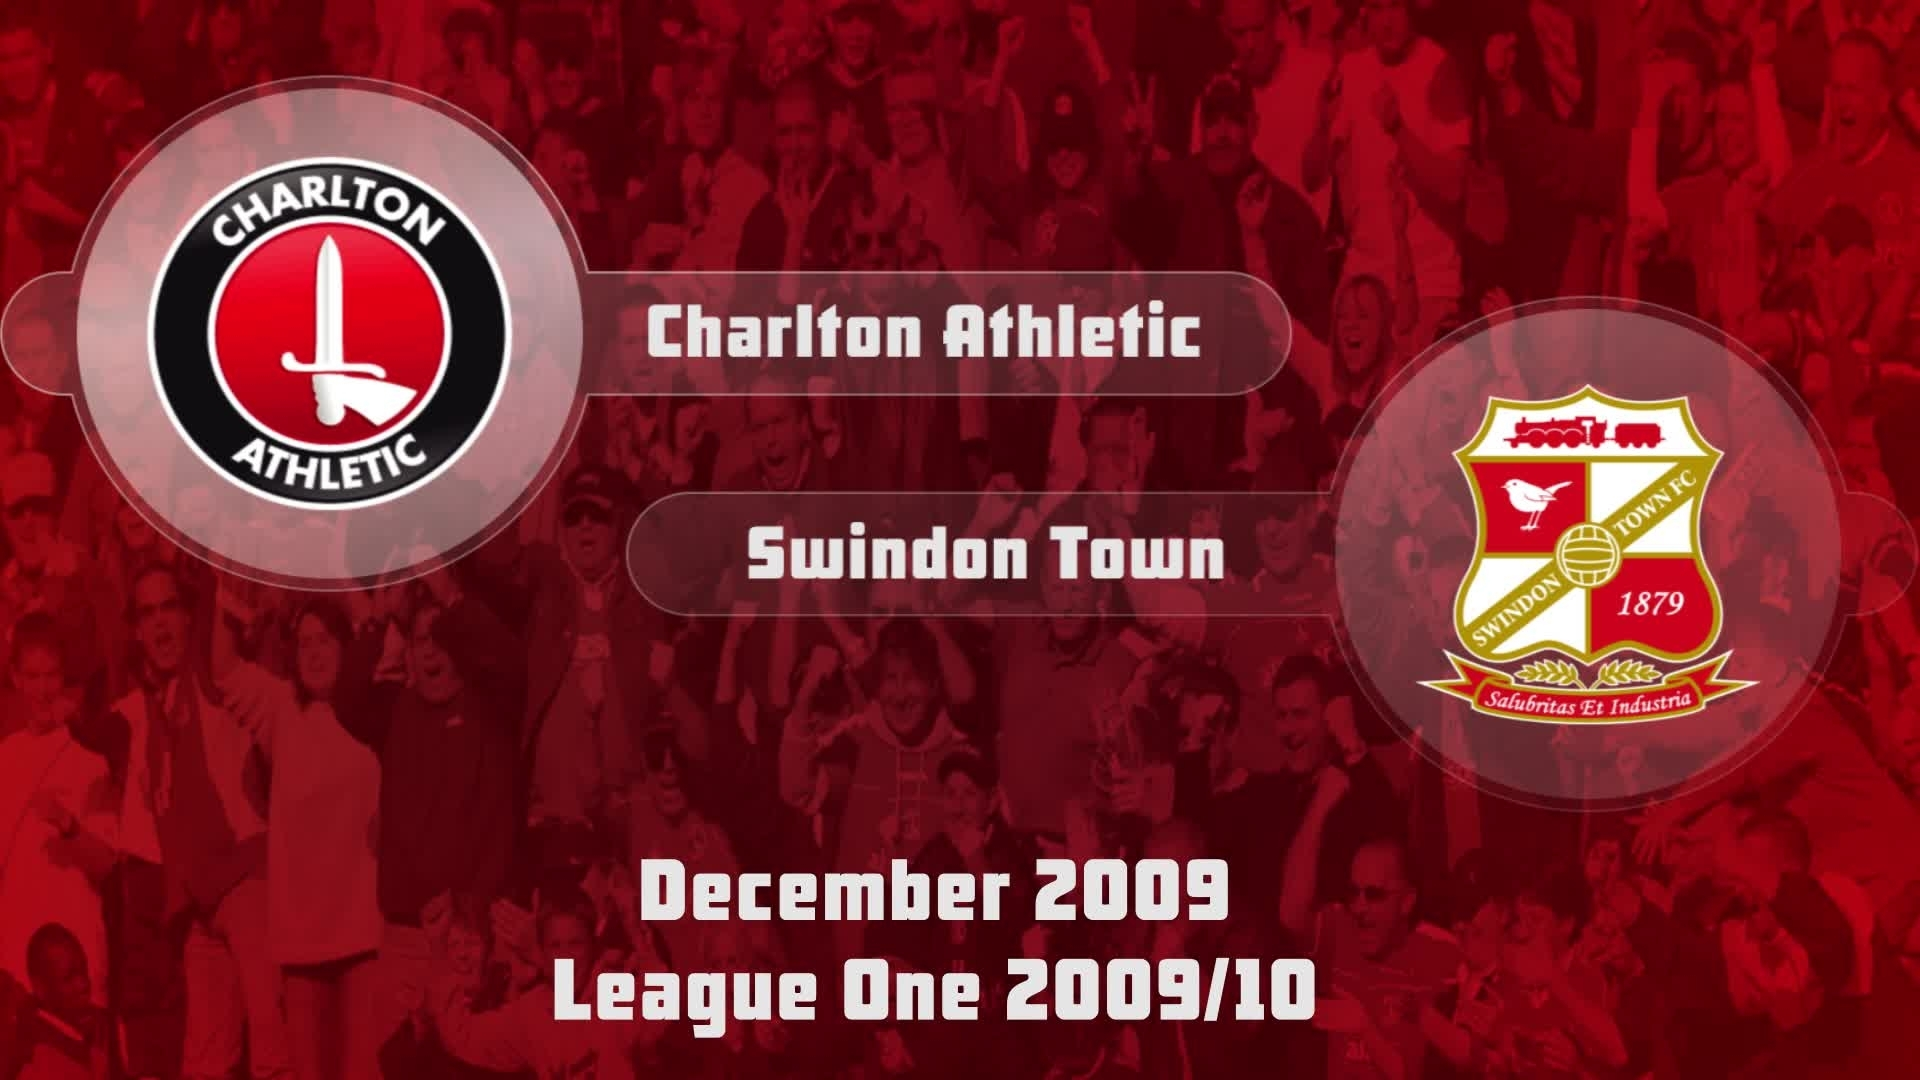 27 HIGHLIGHTS | Charlton 2 Swindon 2 (Dec 2009)